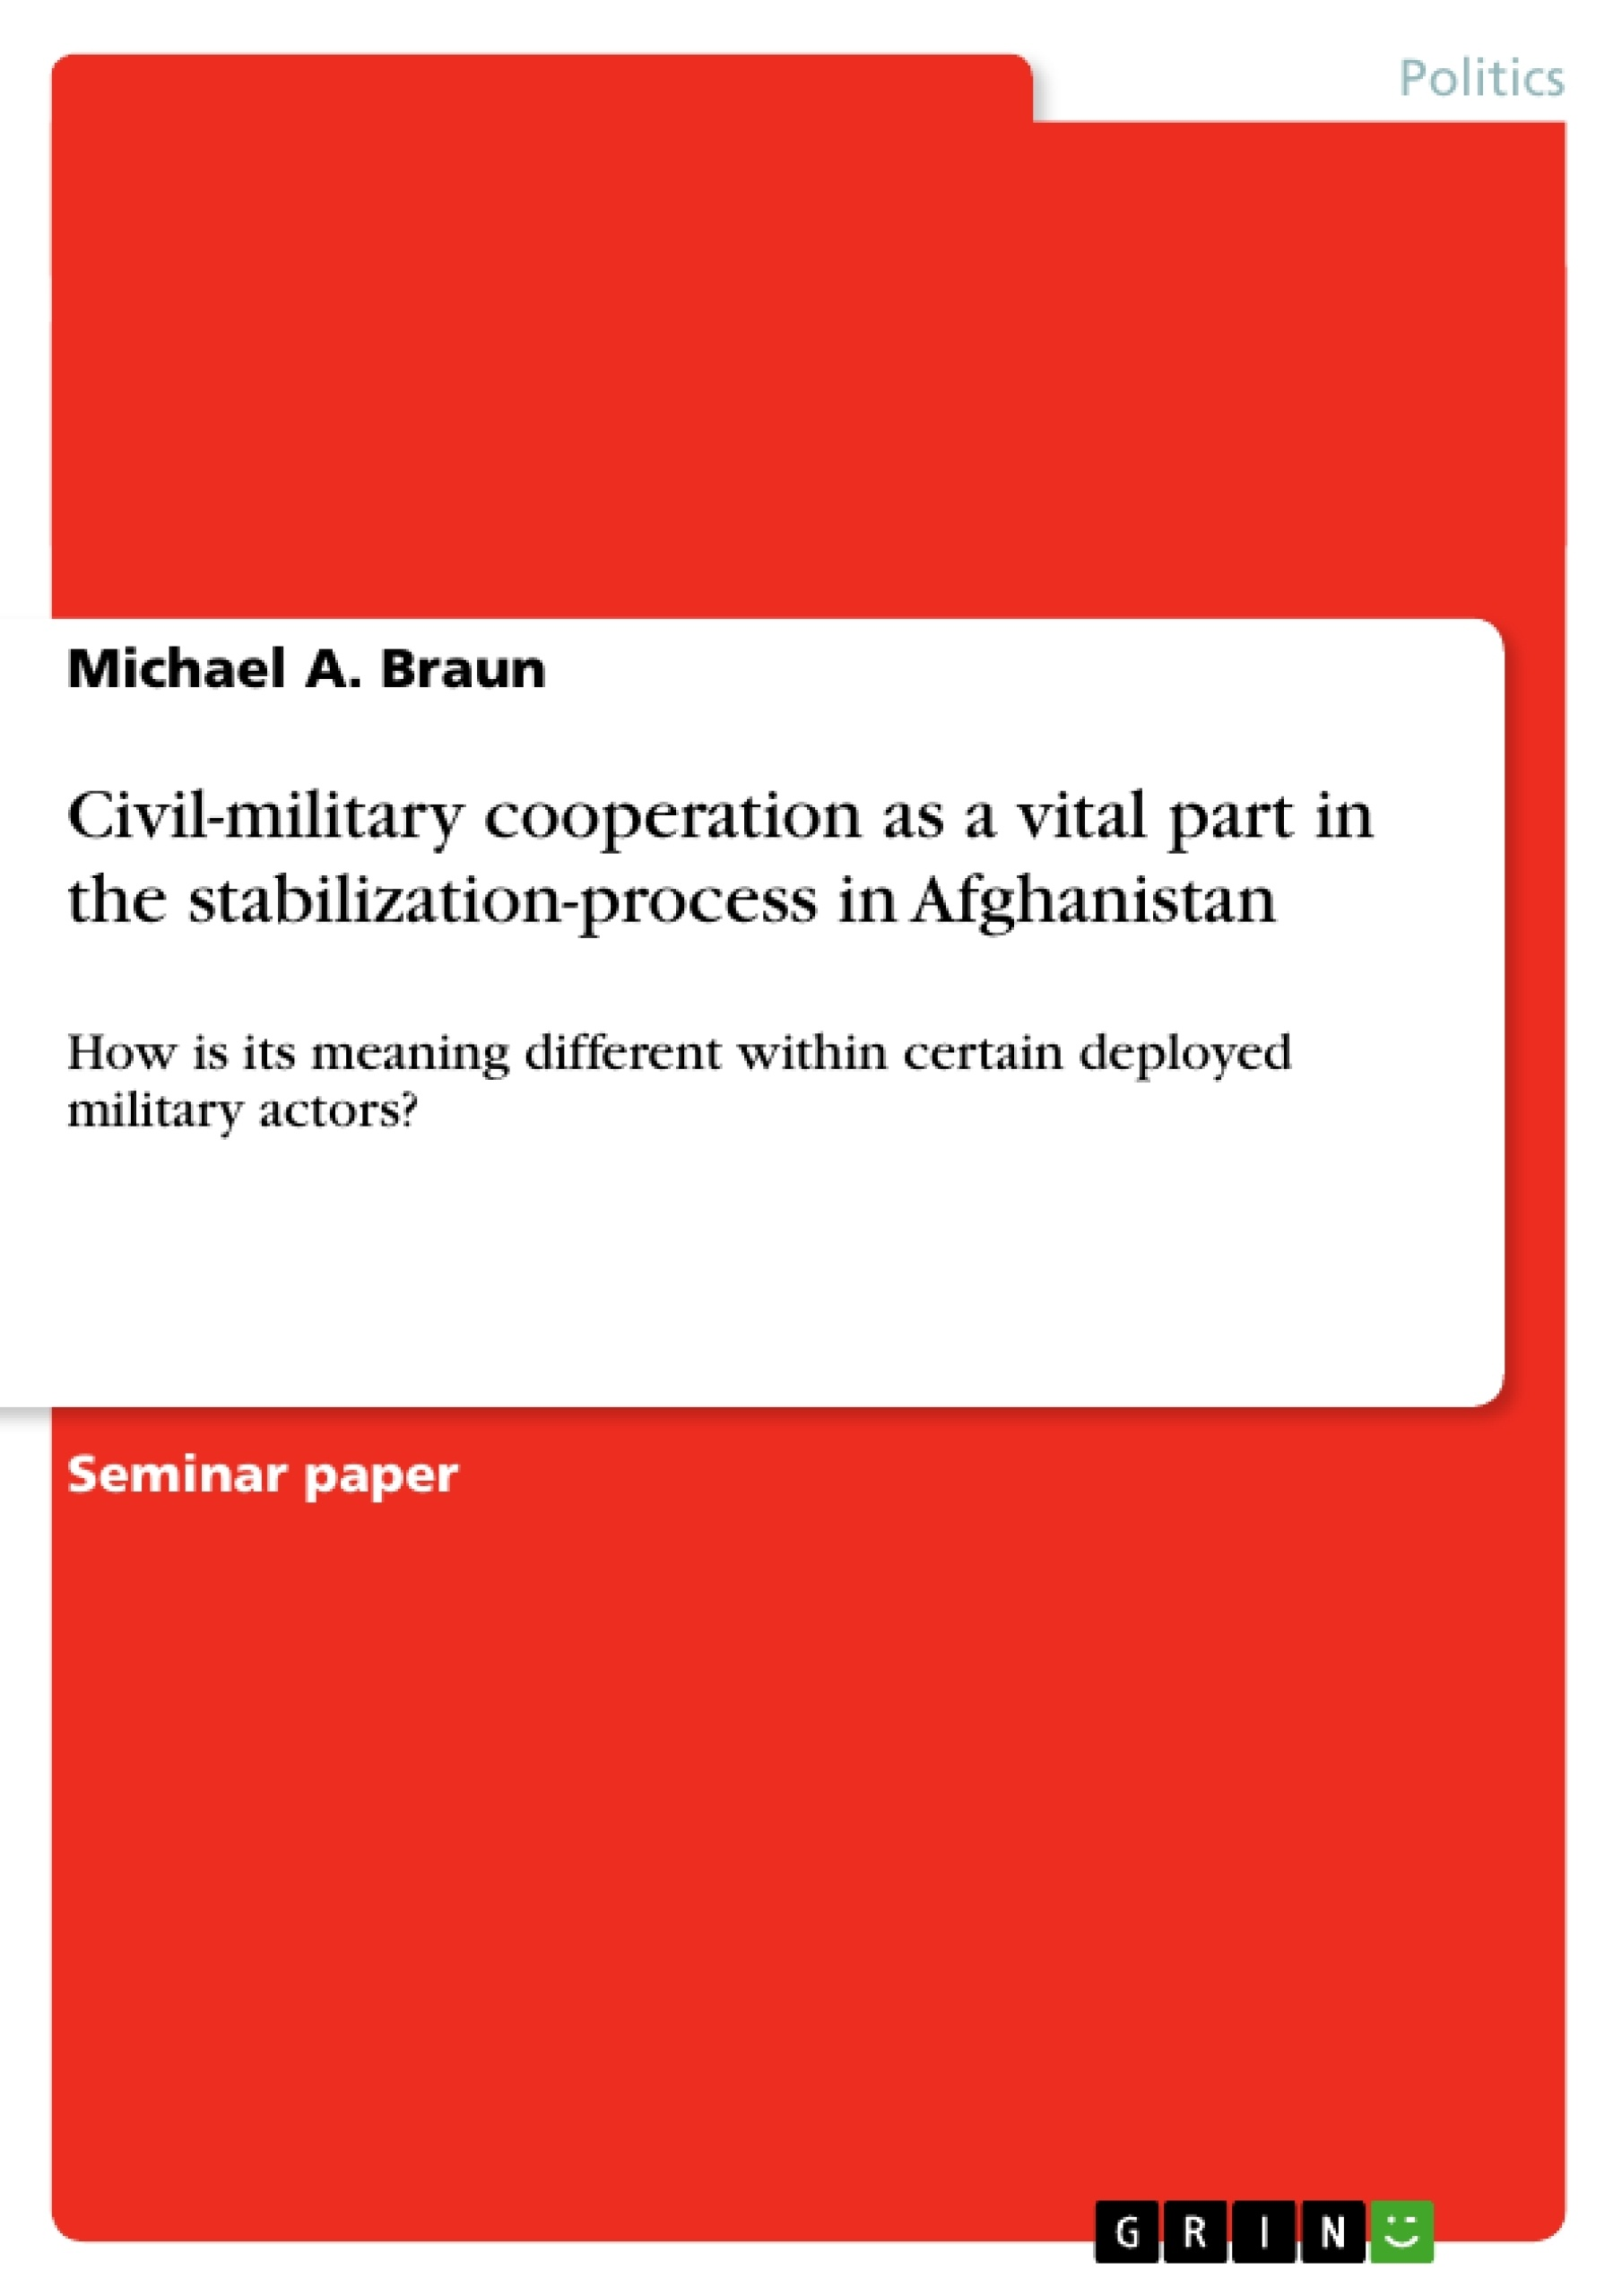 Title: Civil-military cooperation as a vital part in the stabilization-process in Afghanistan